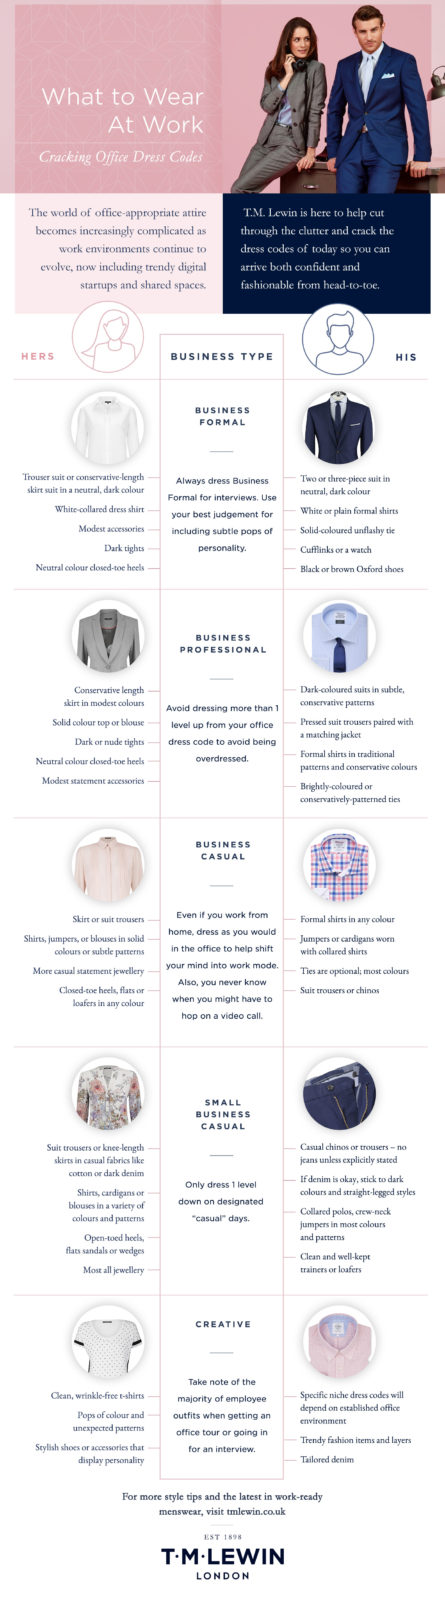 Infographic: What To Wear To Work